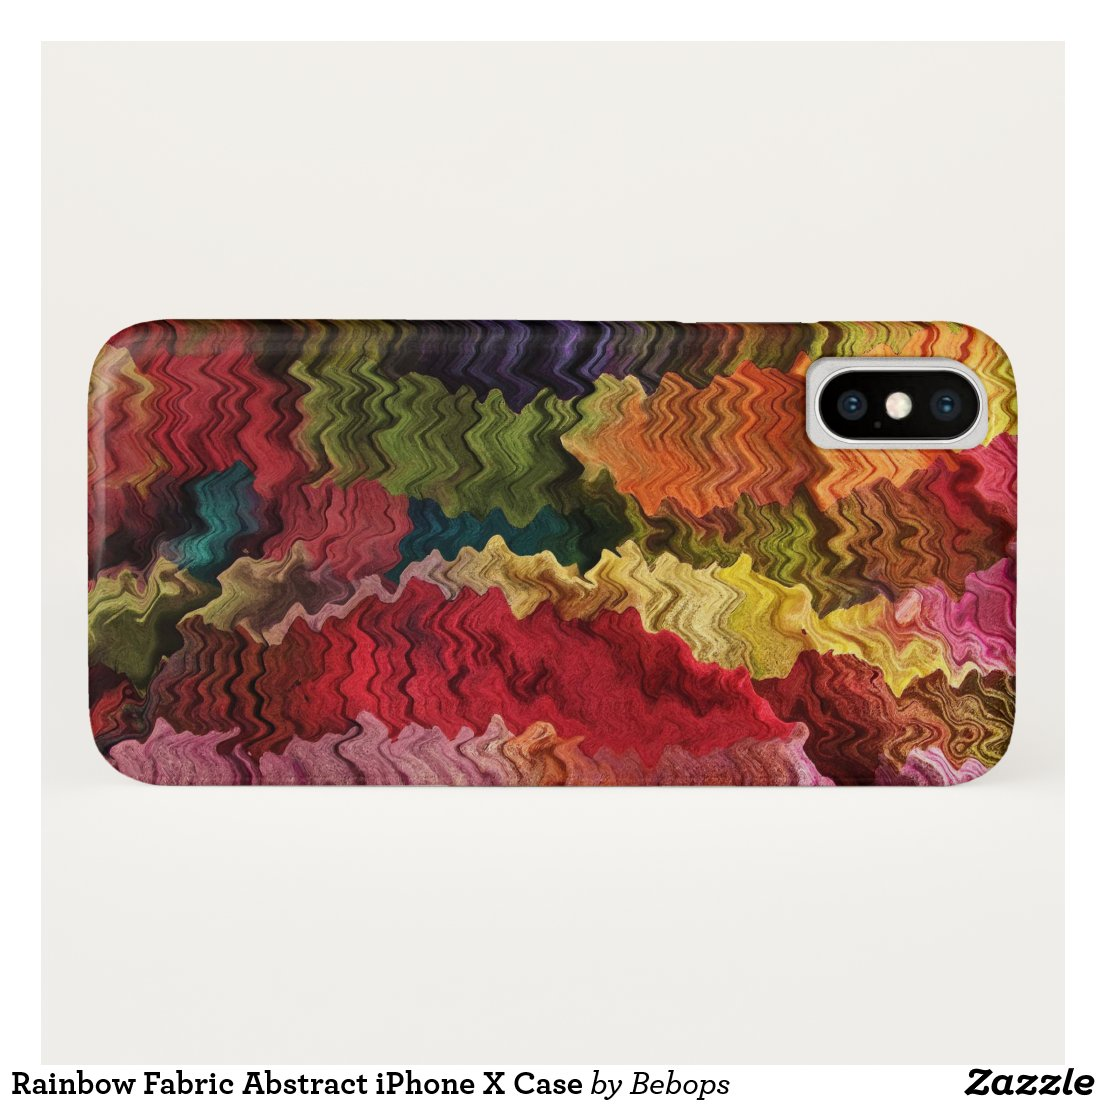 Rainbow Fabric Abstract iPhone X Case